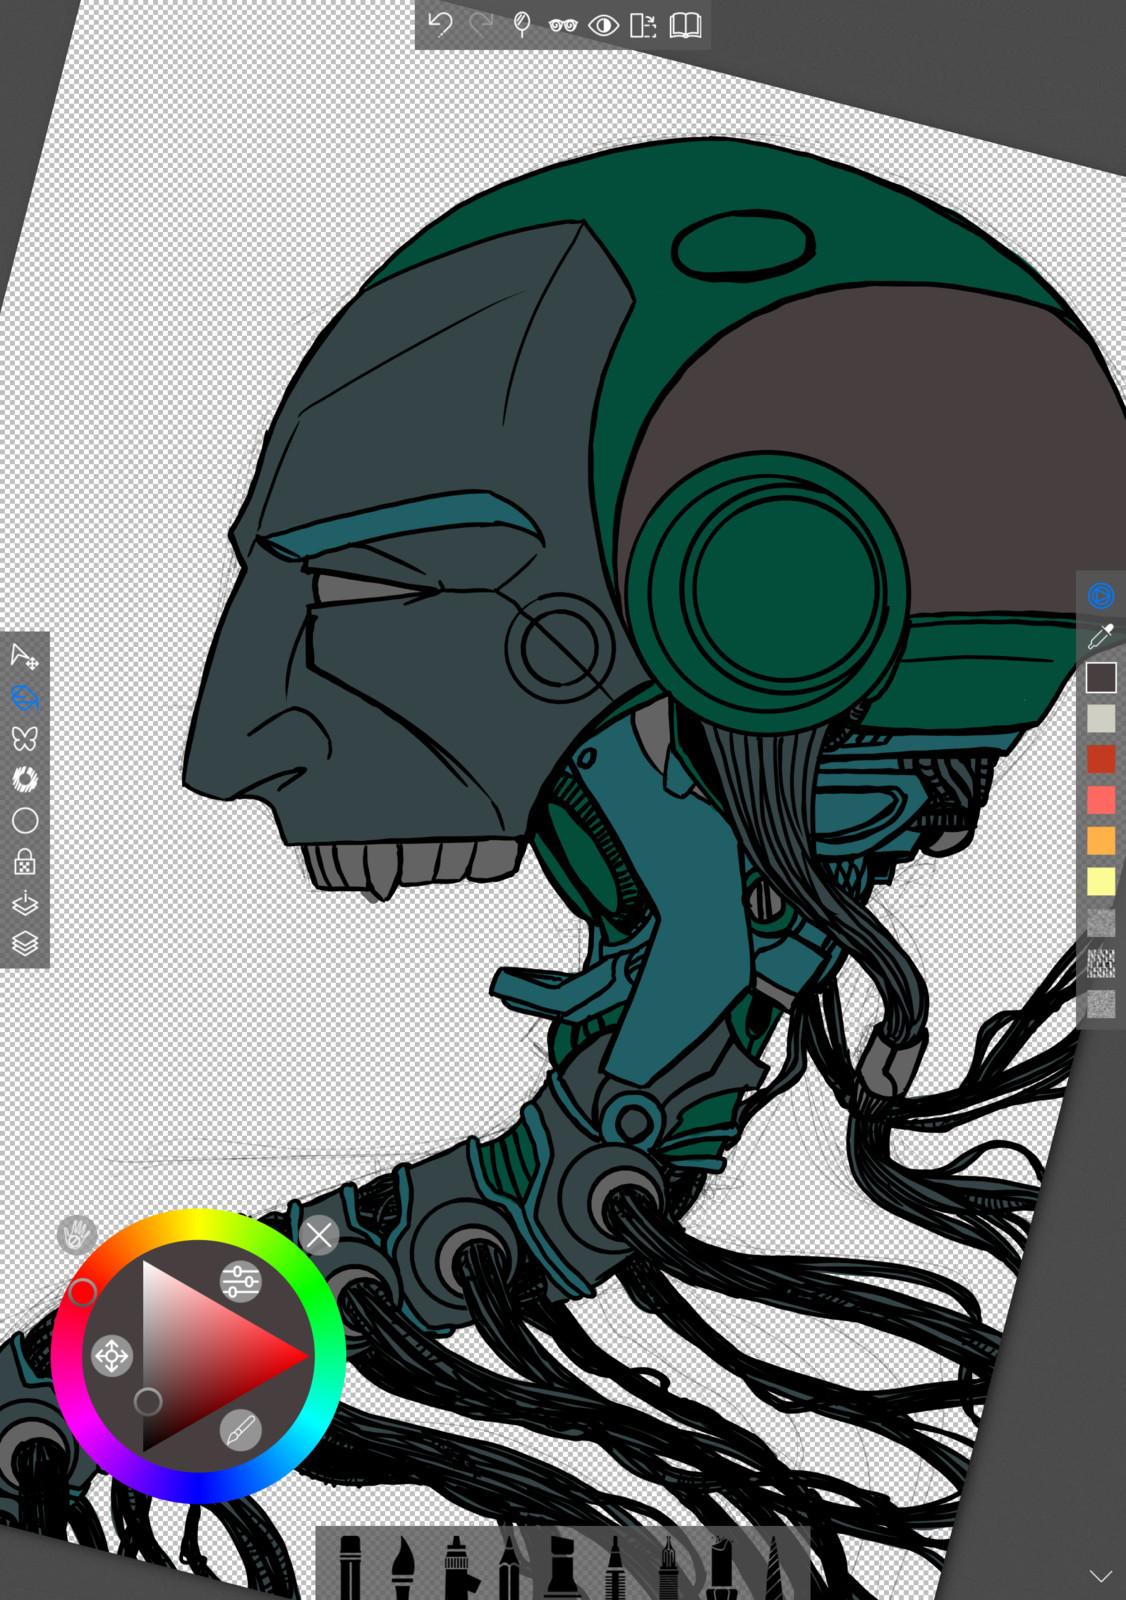 03 - Painting the base flat colors